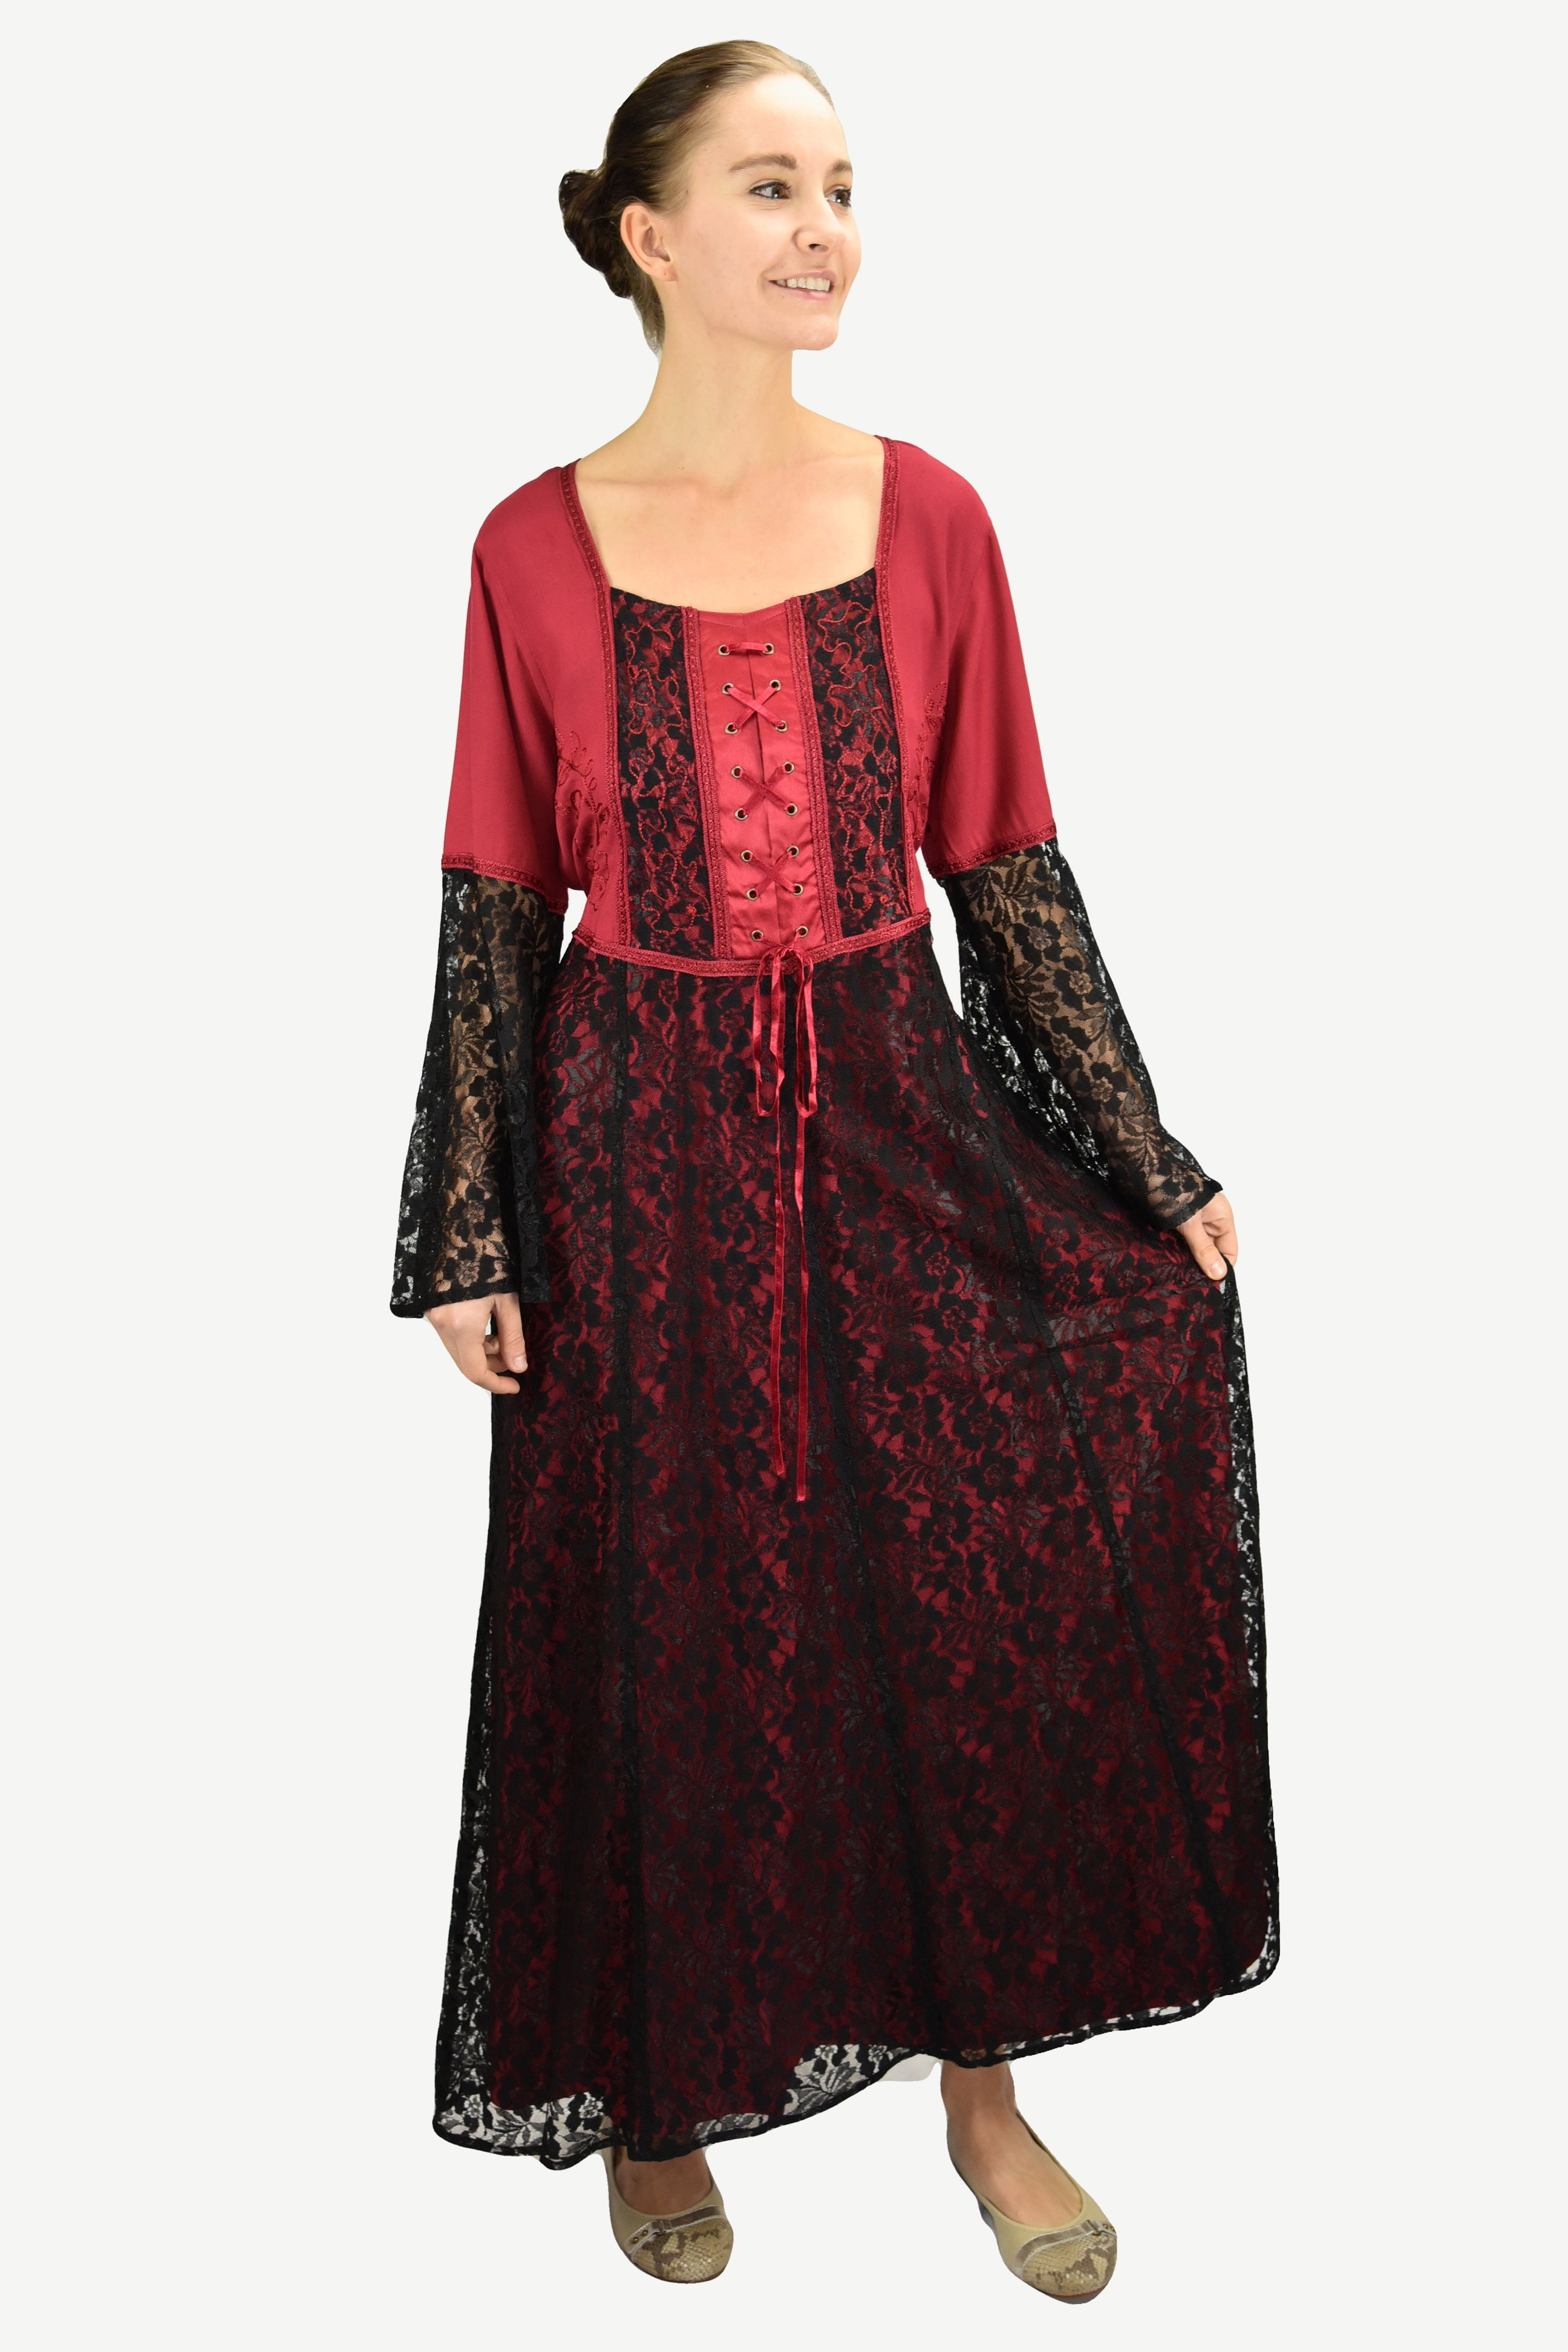 e9aef3447c1 Medieval Vintage Corset Lace Two Tone Renaissance Dress Gown - Agan  Traders